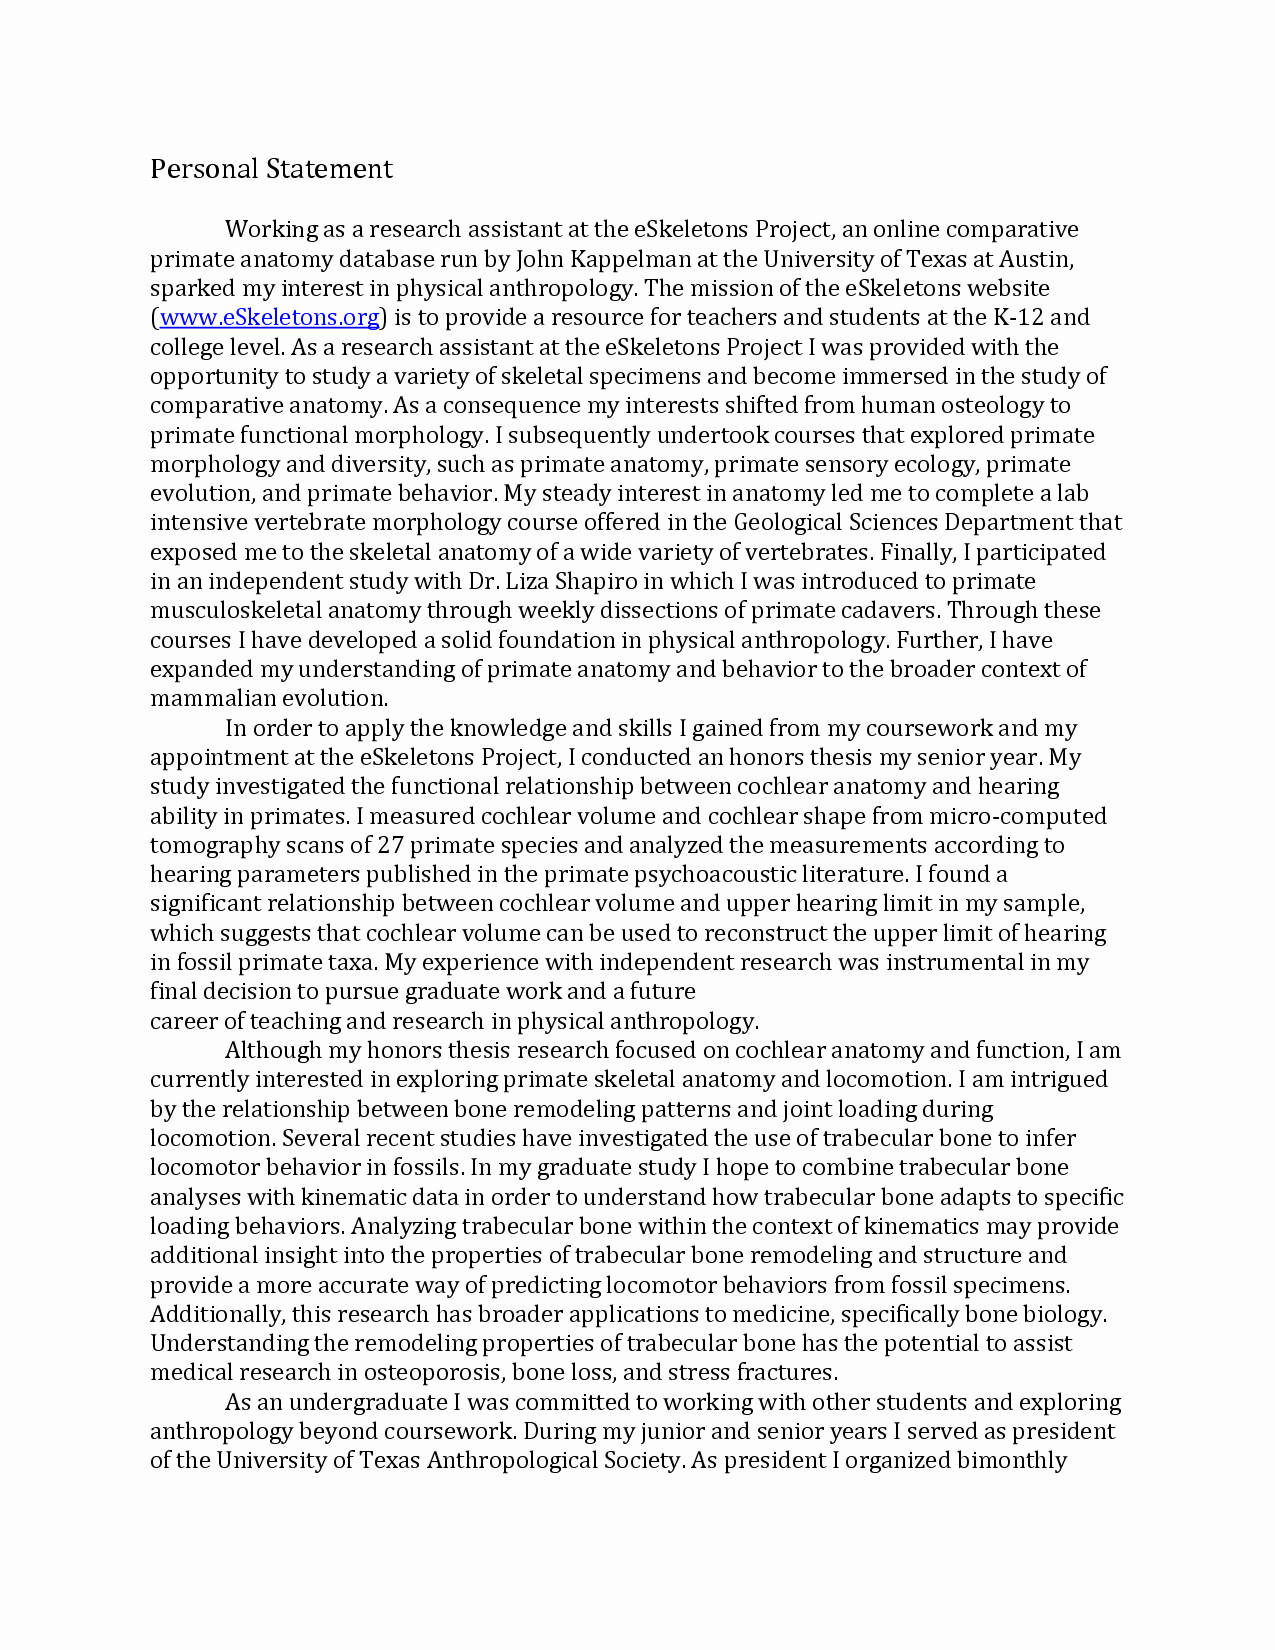 Uc Personal Statement Sample Essays Awesome Best Essay Contributors Invited to Leaders forum 2015